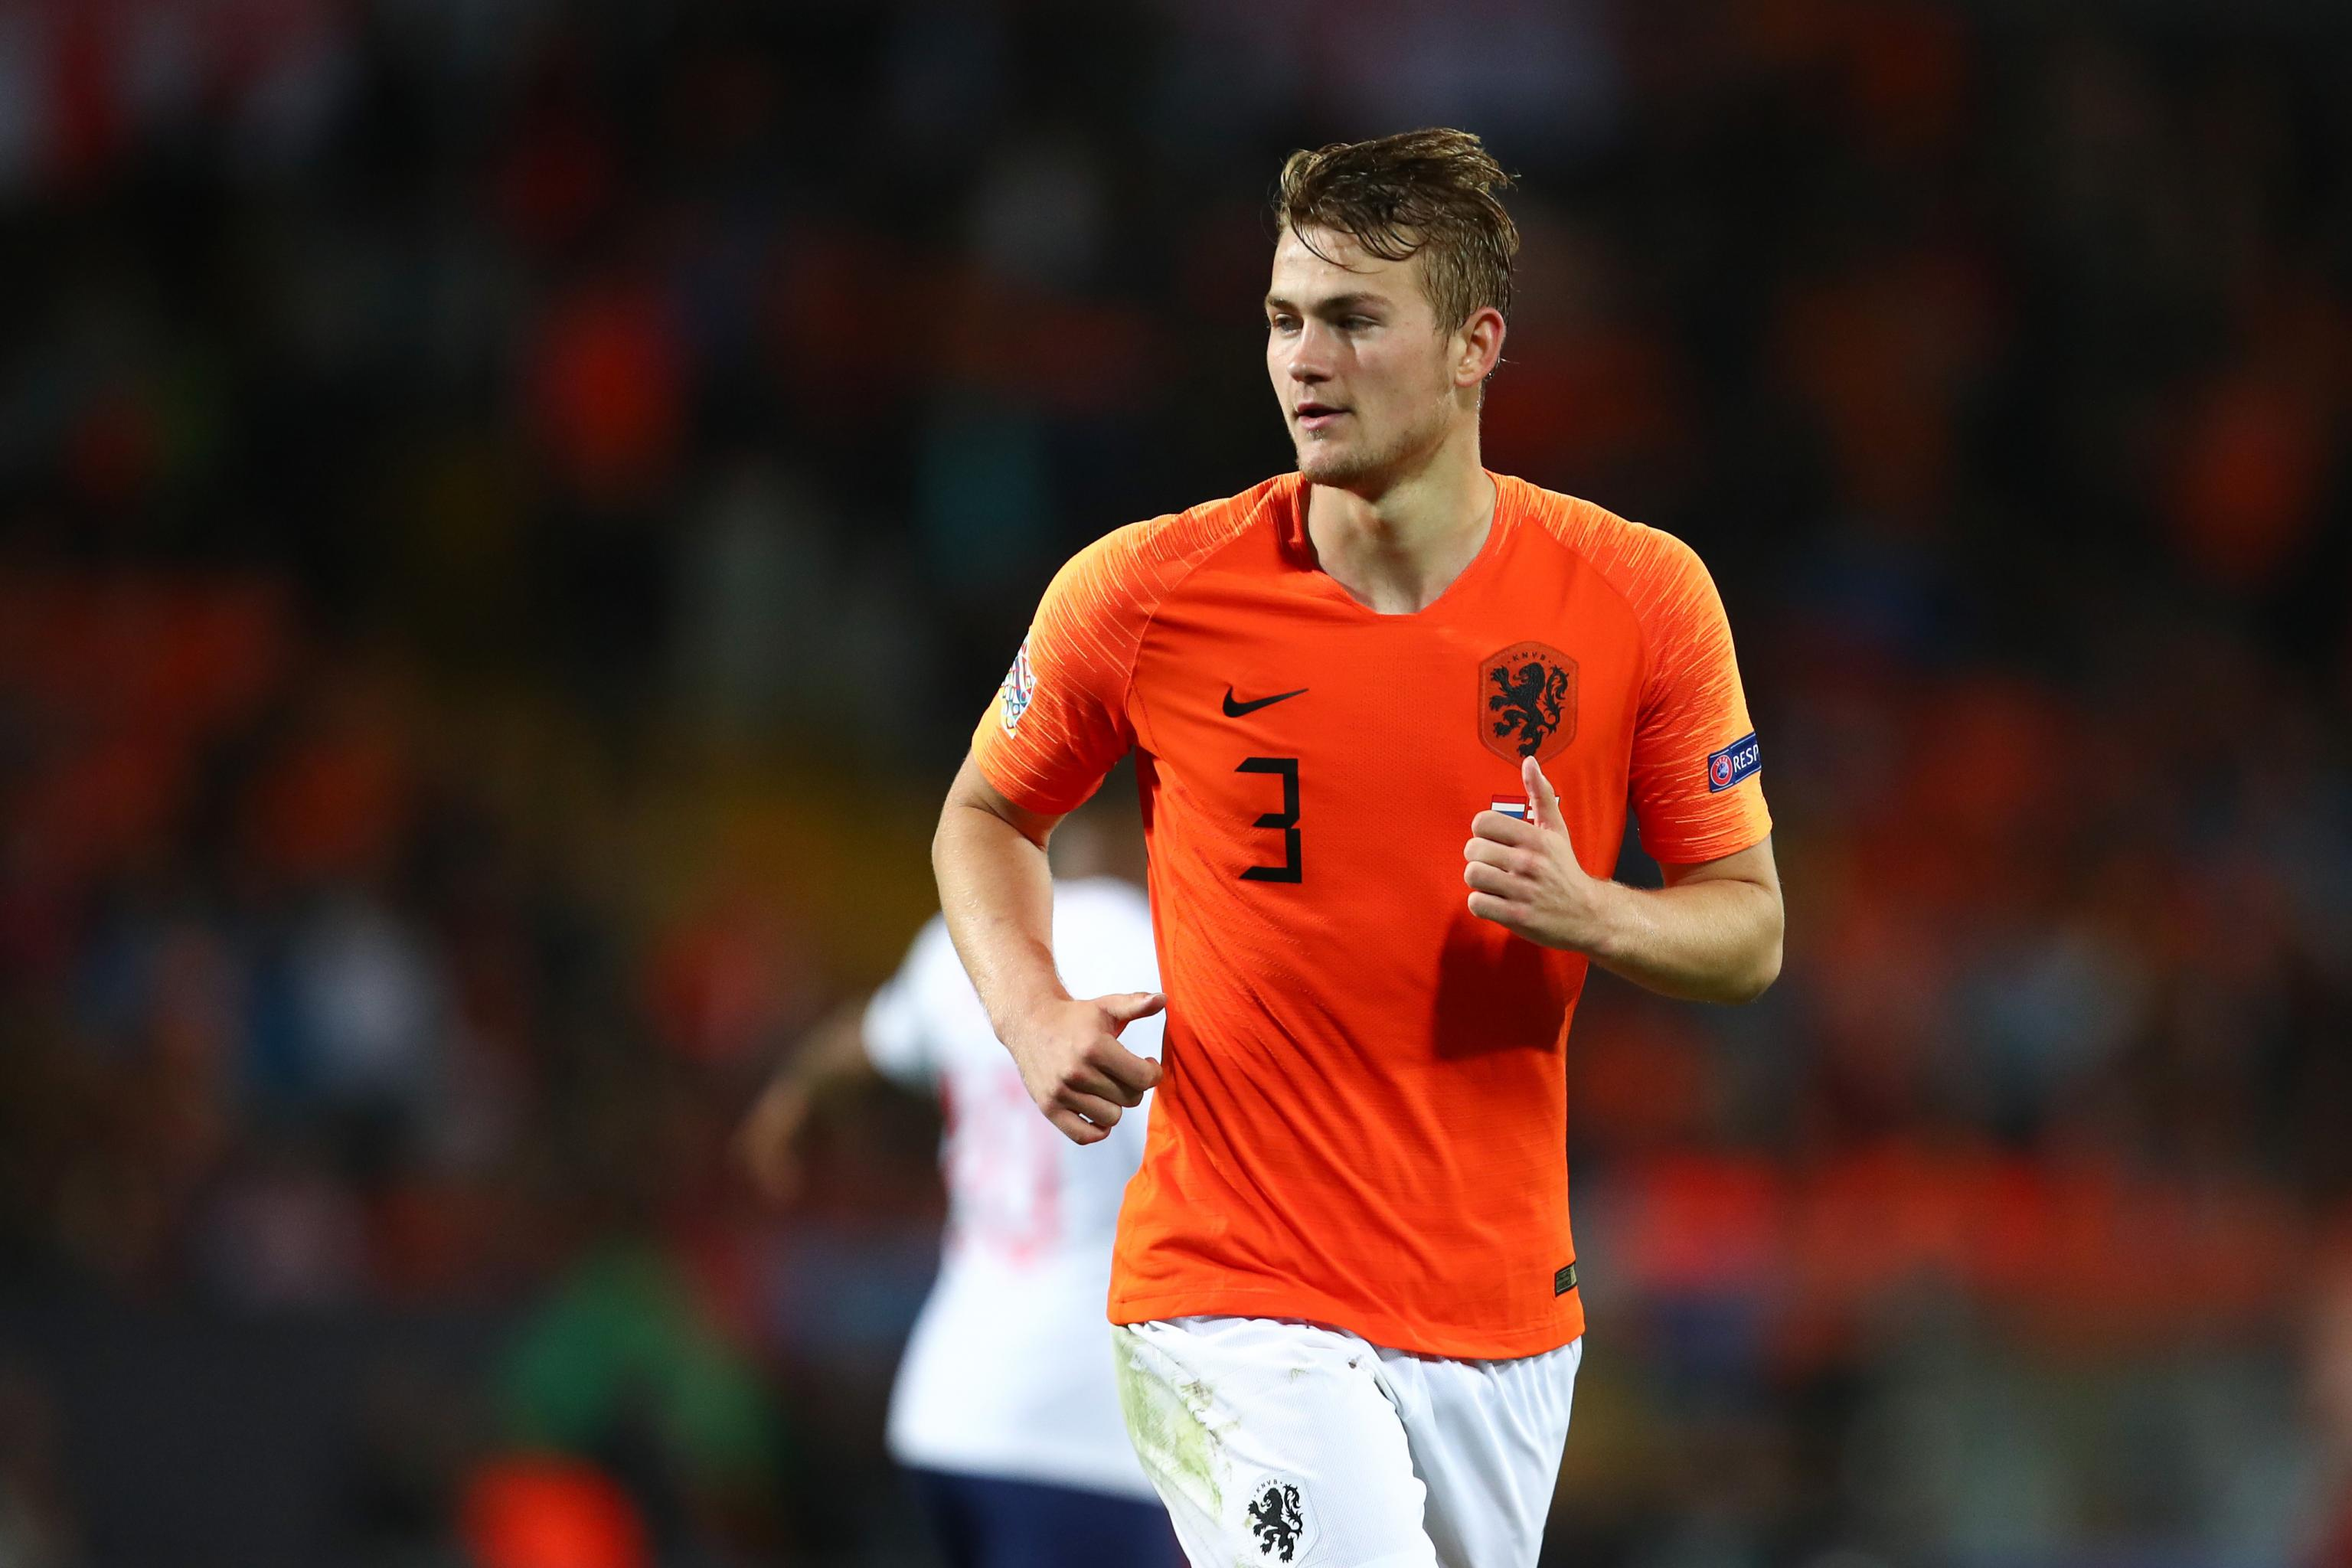 Uefa Nations League 2019 Final Portugal Vs Netherlands Schedule And Preview Bleacher Report Latest News Videos And Highlights